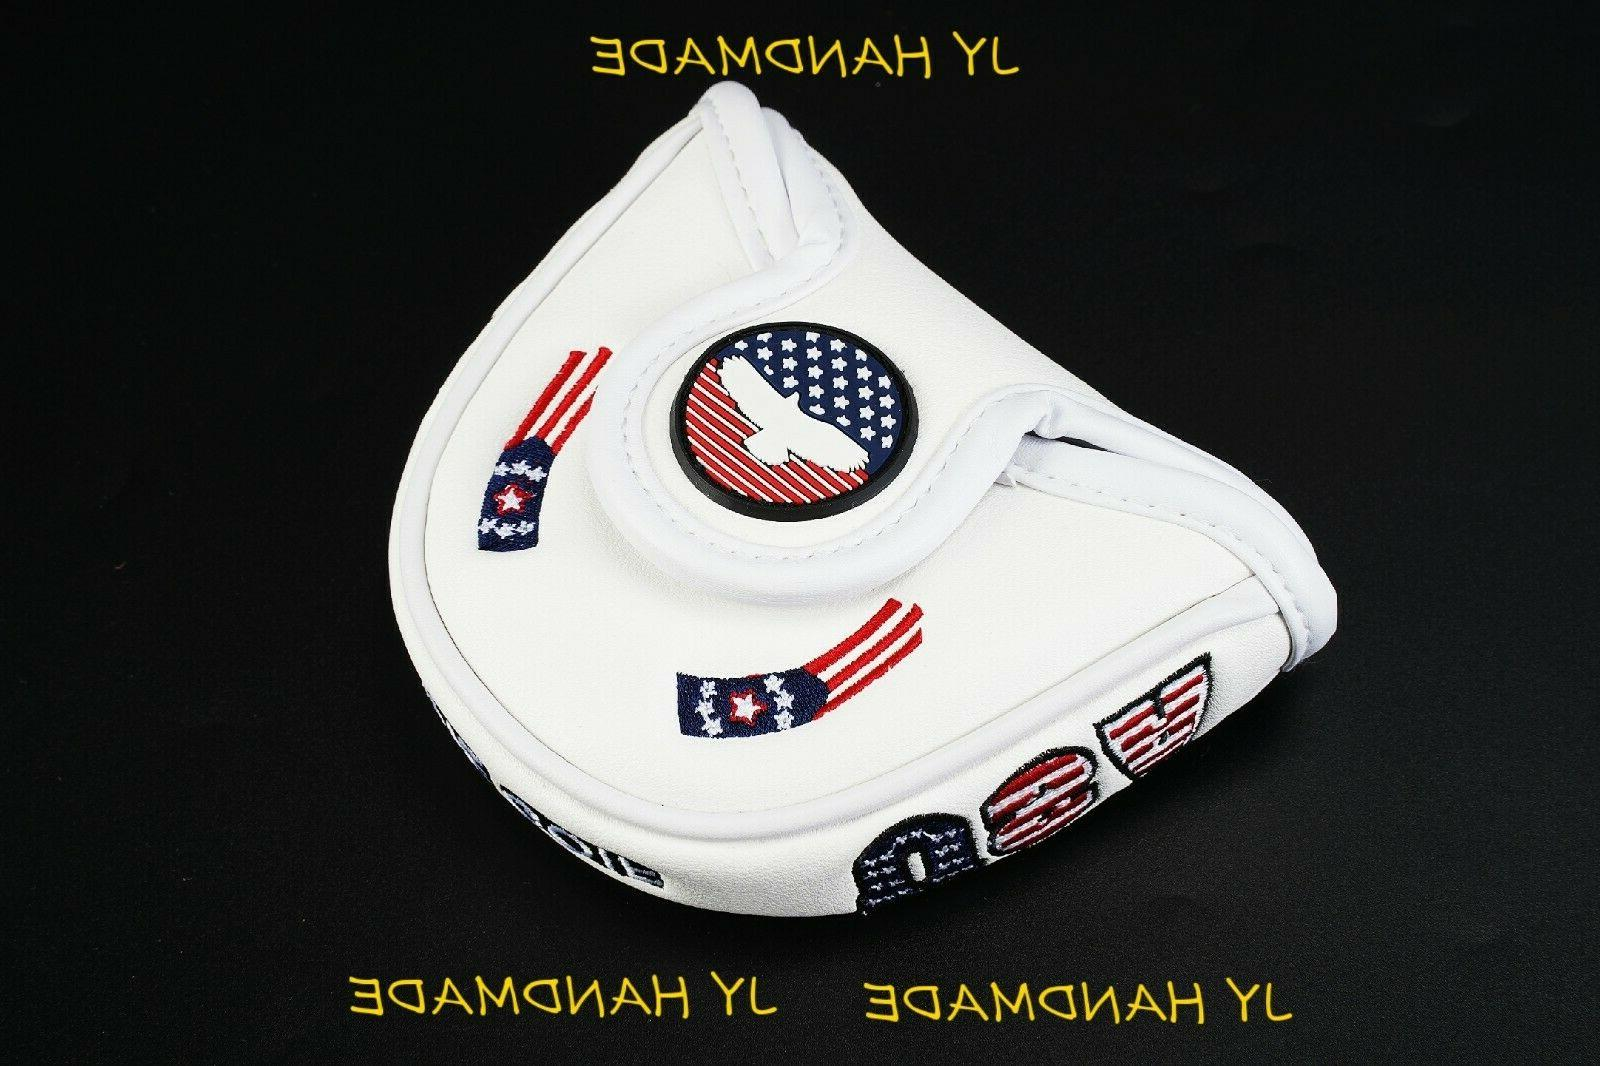 AMERICA Cover Headcover For Scotty Cameron US